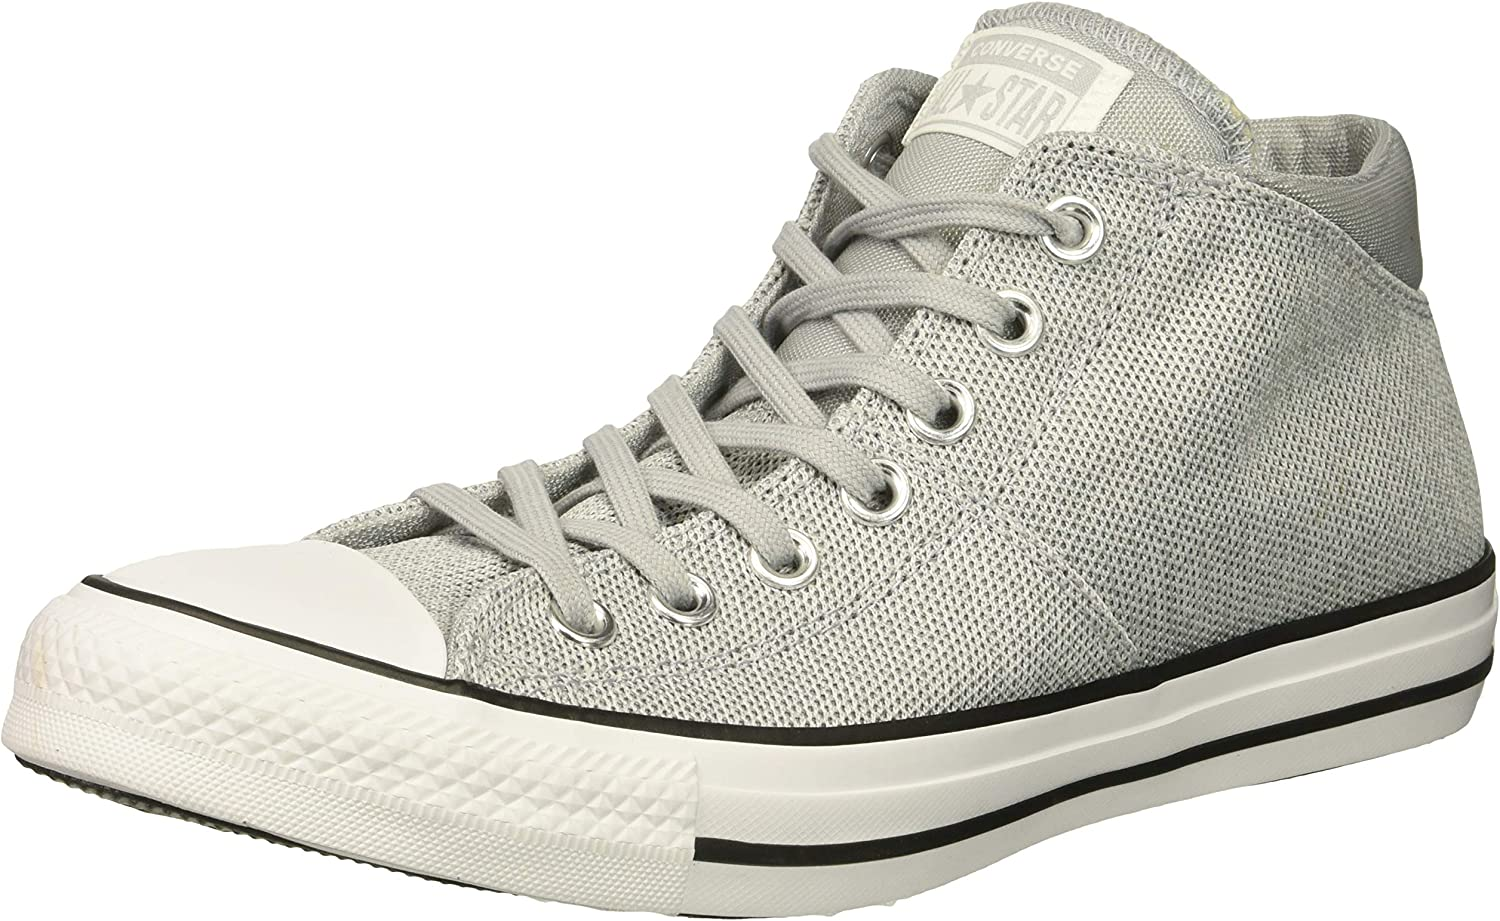 Converse Womens Chuck Taylor All Star Knit Madison Mid Sneaker